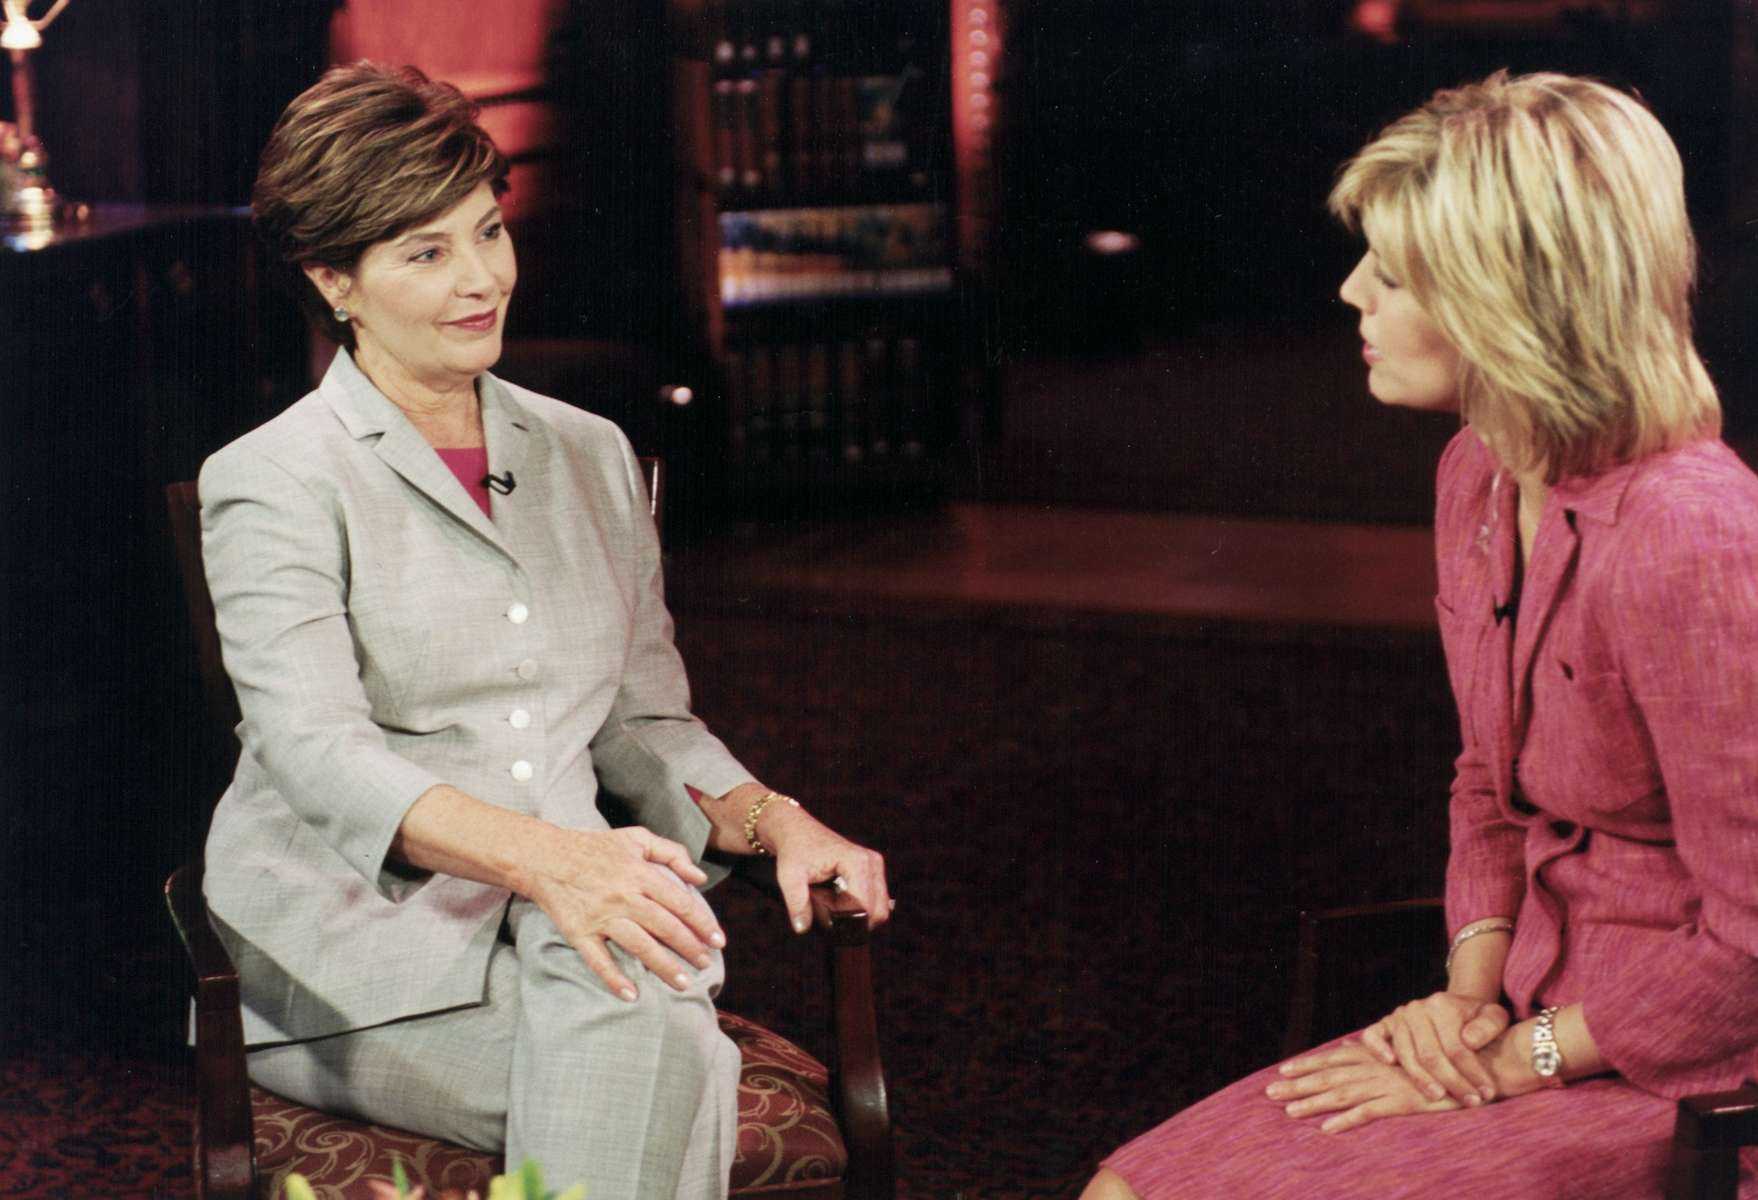 Interviewing former First Lady Laura Bush